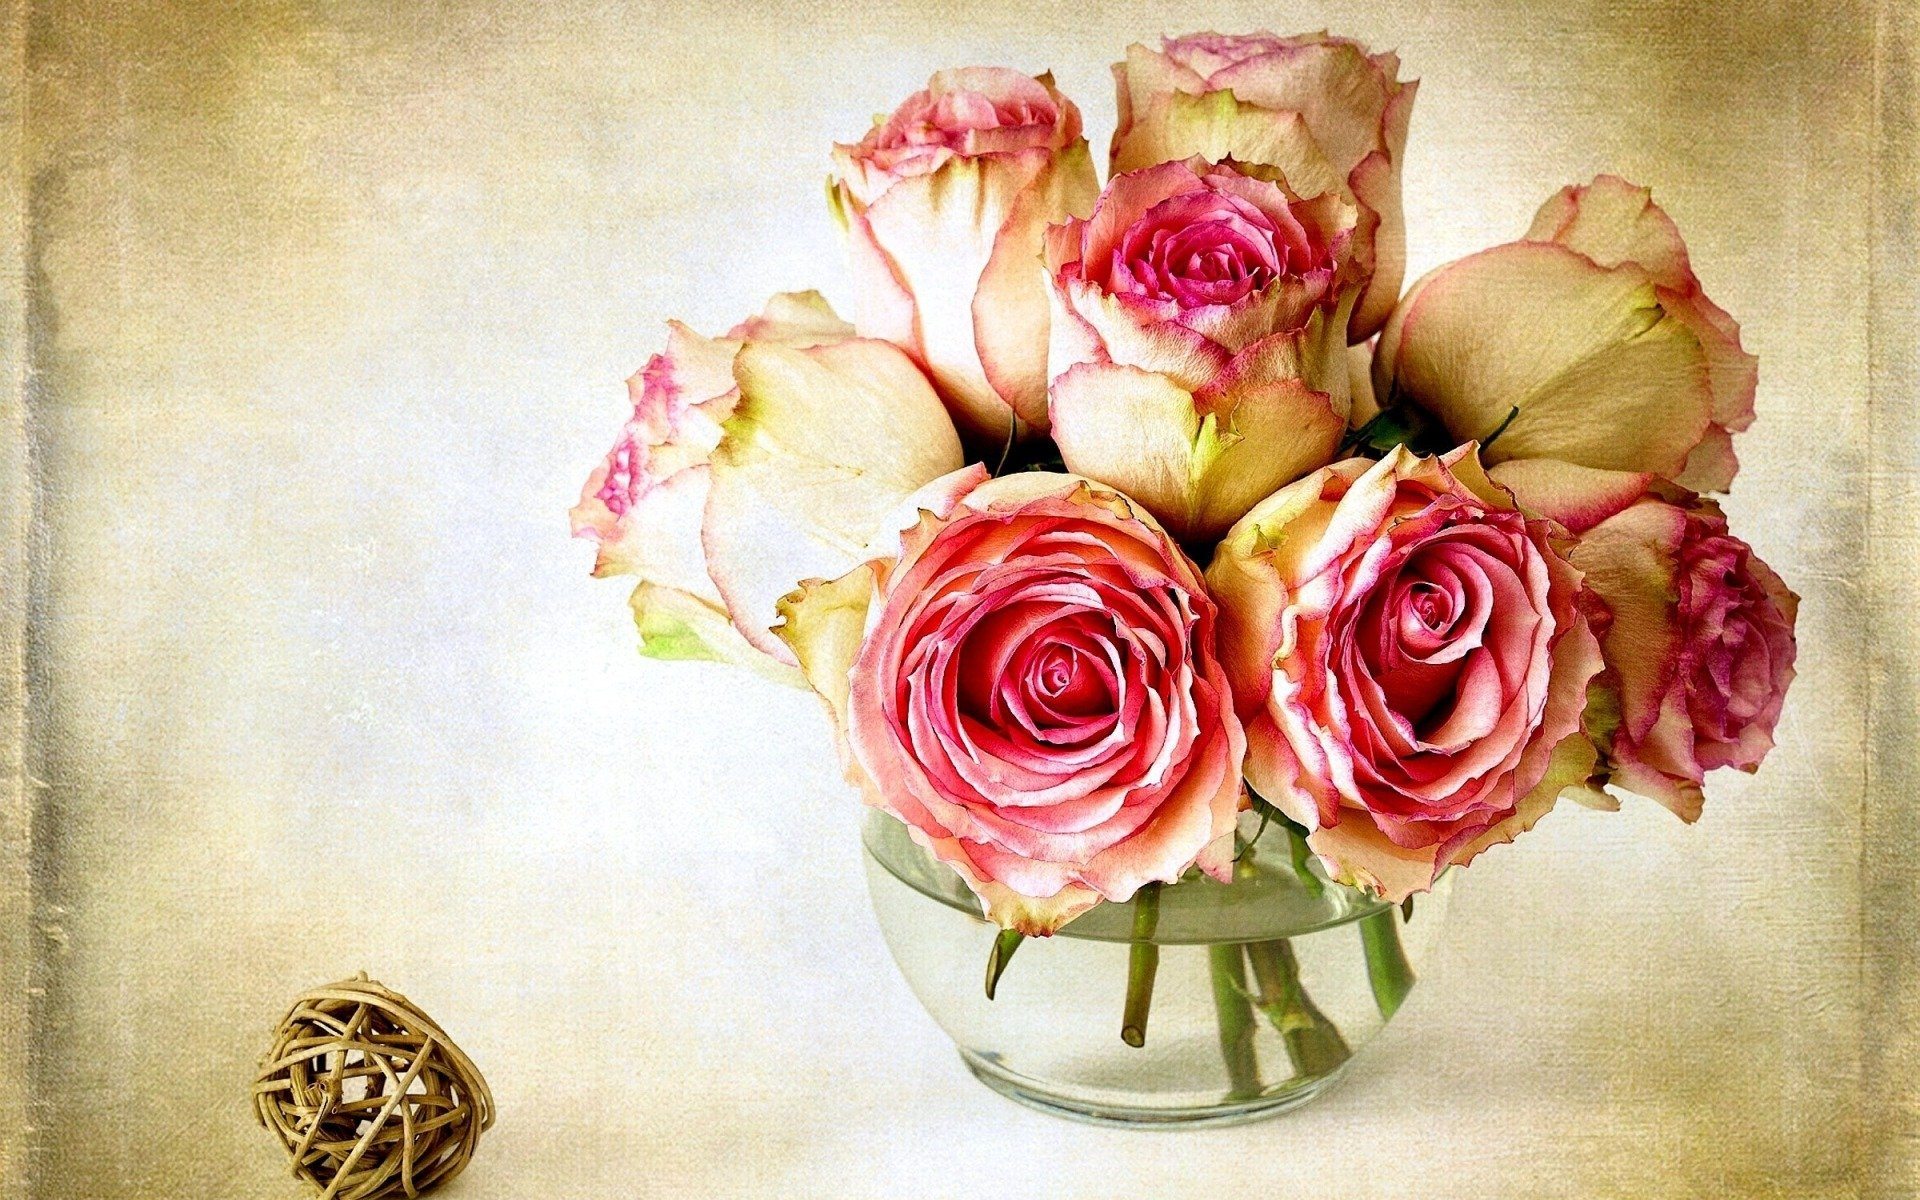 roses Save 70% on bulk roses online buy bulk red roses, pink roses, white roses and wholesale roses at bunchesdirect.